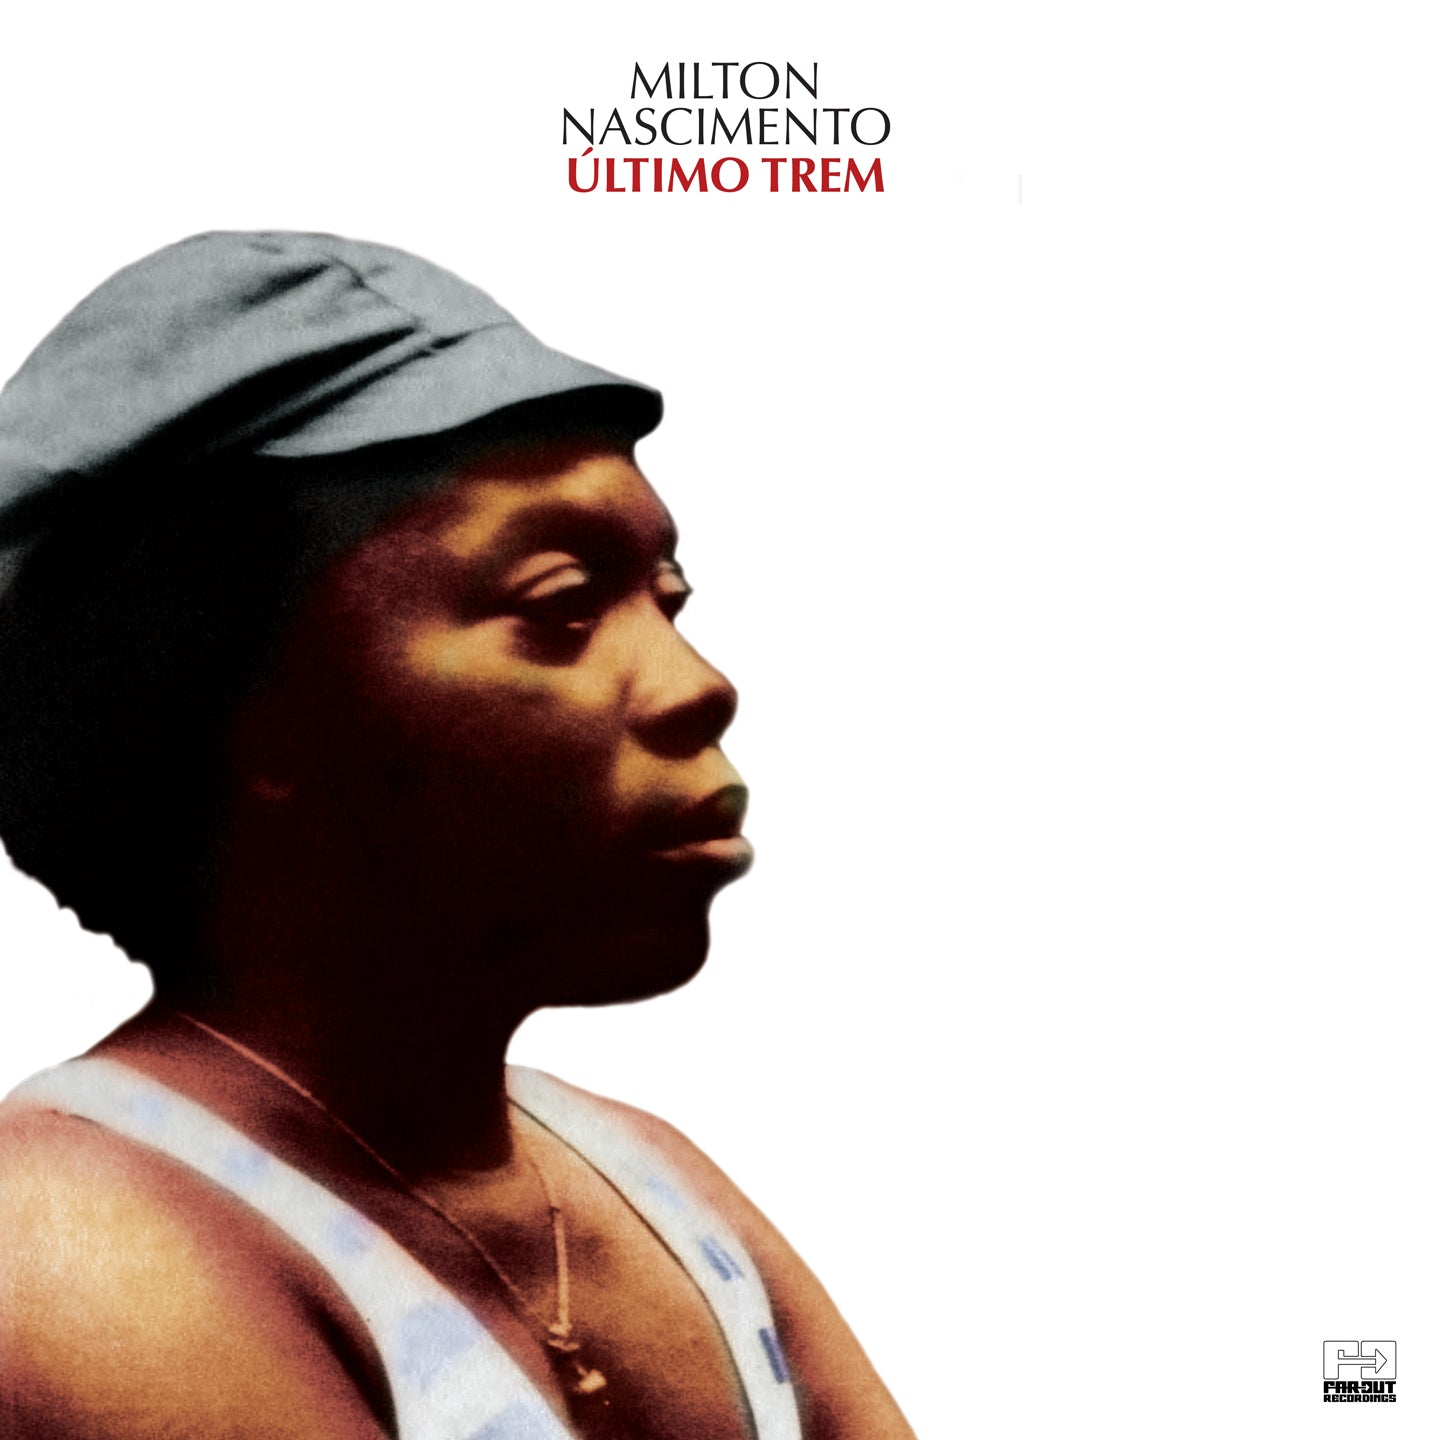 Milton Nascimento - Ultimo Trem (RSD 2020 Drop One) 2LP Red Colour Vinyl Record